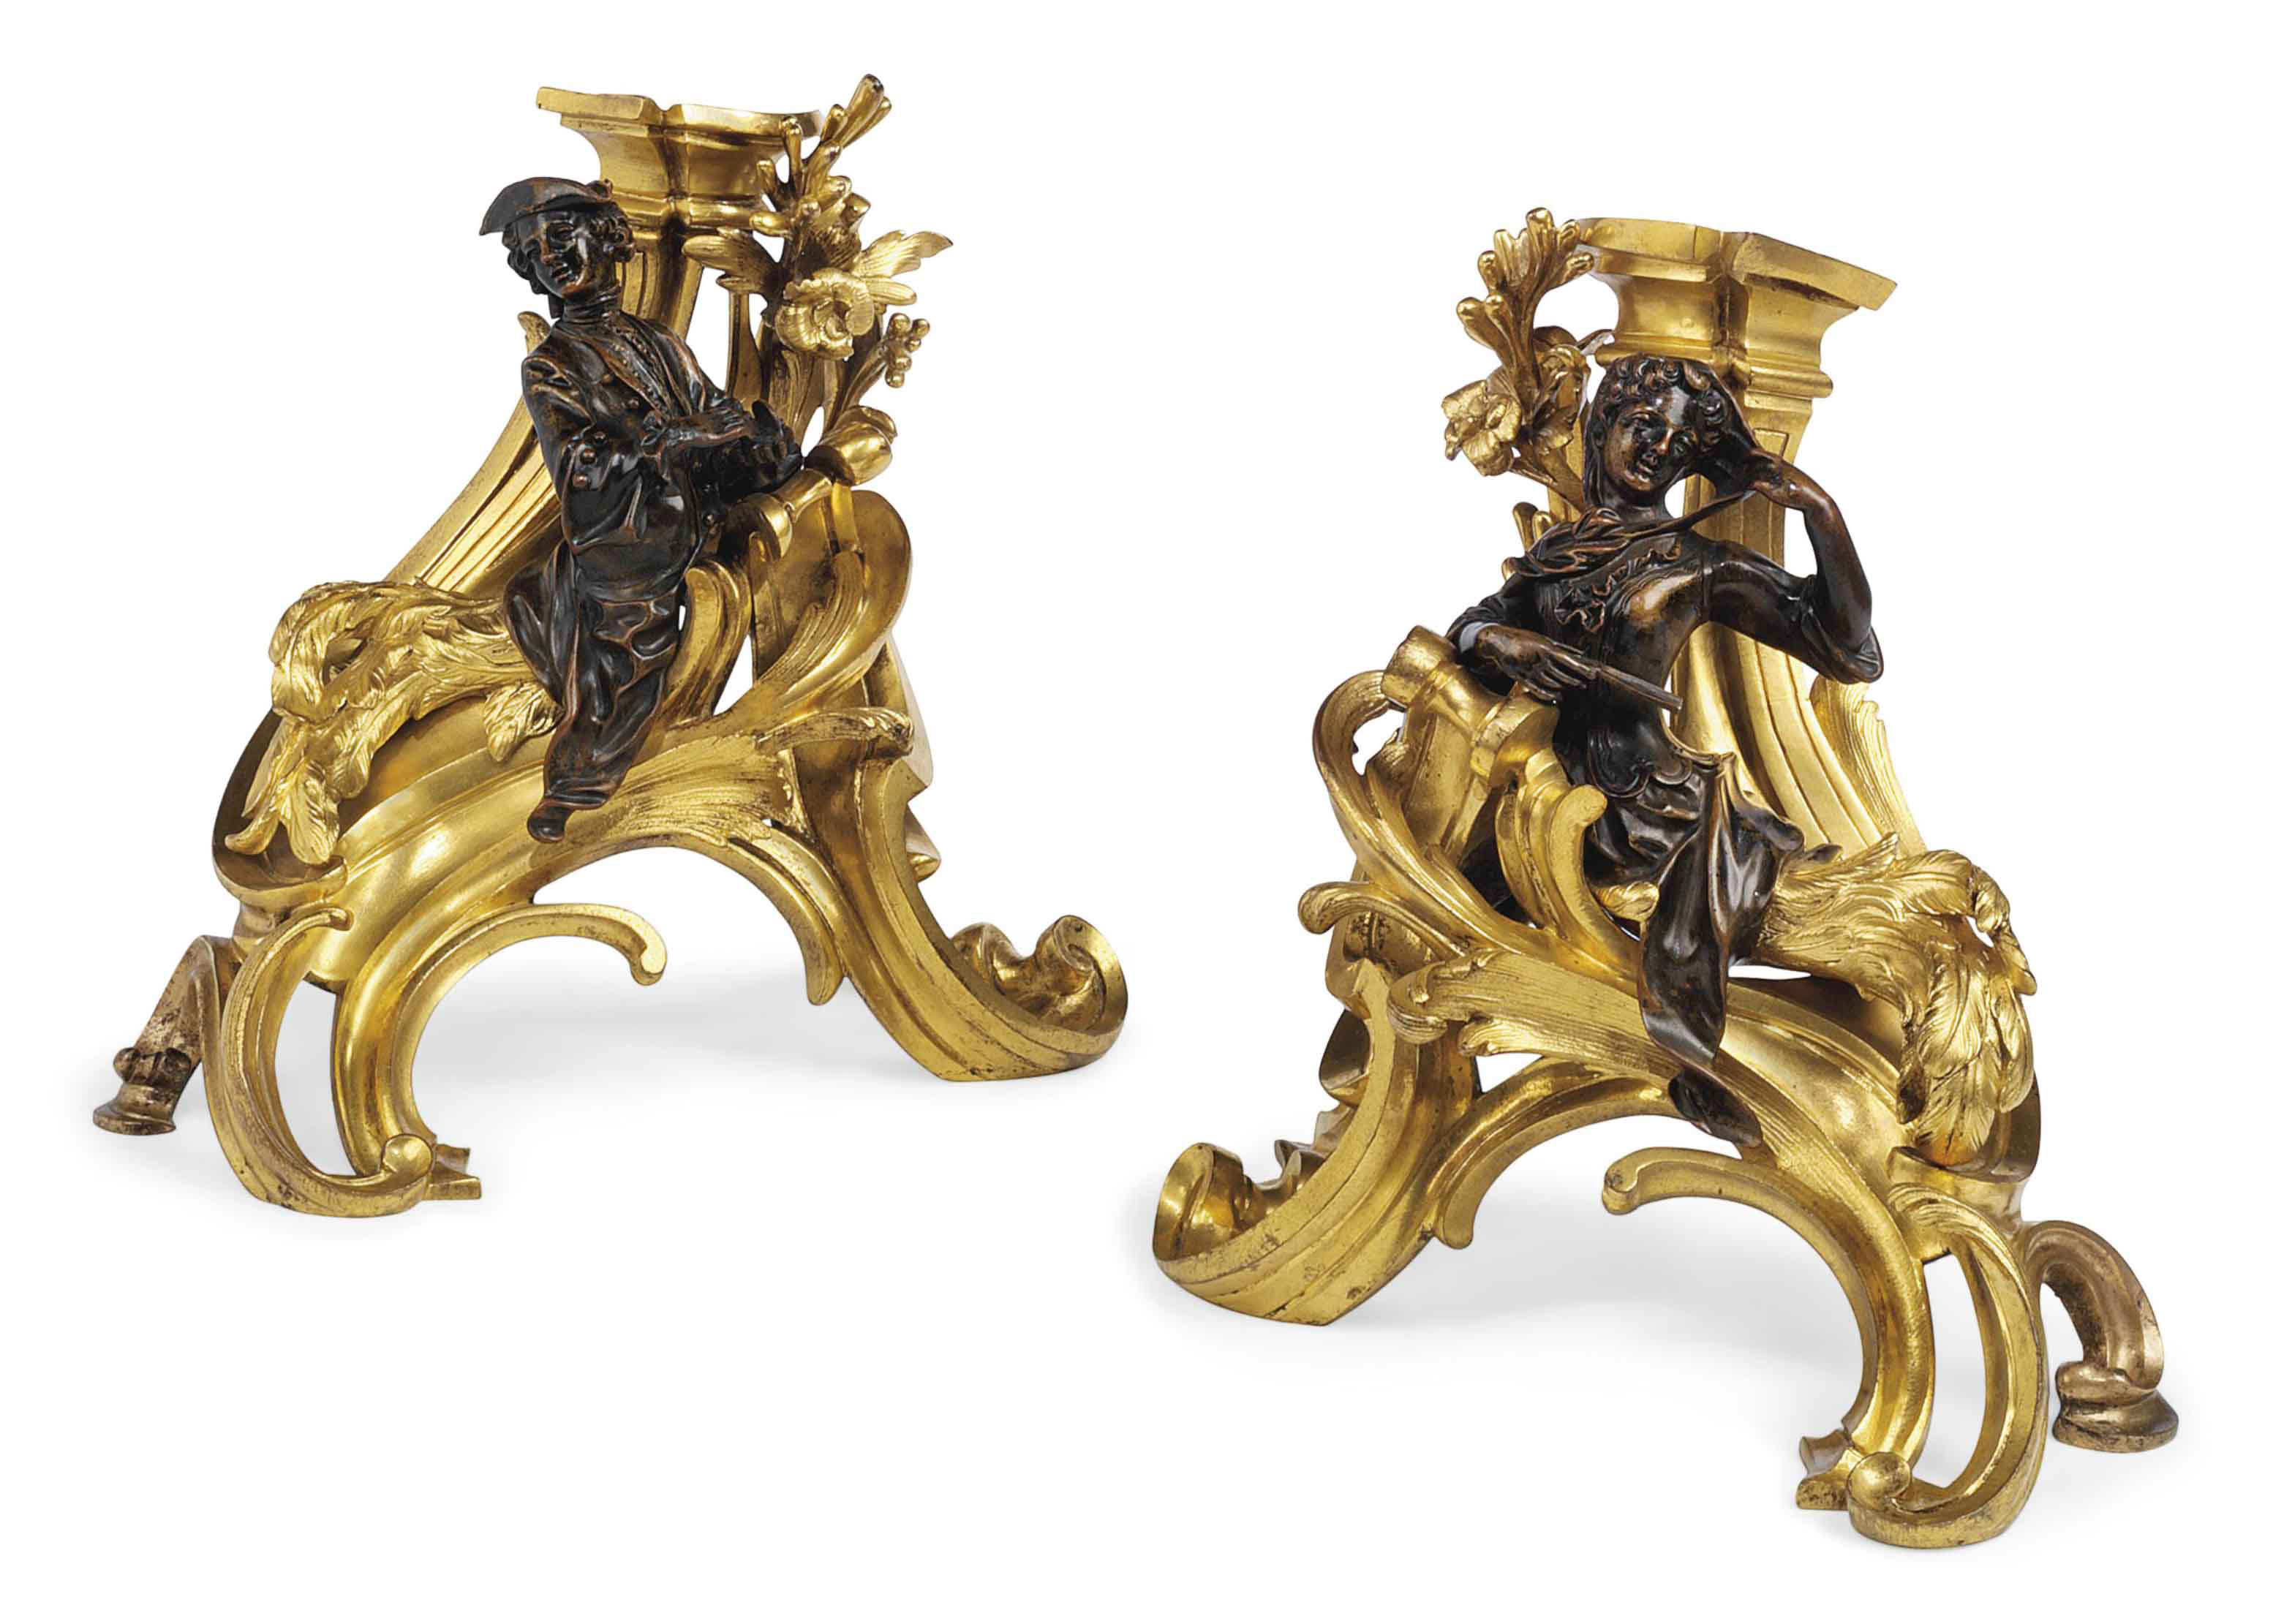 A PAIR OF FRENCH PATINATED BRONZE AND ORMOLU CHENETS